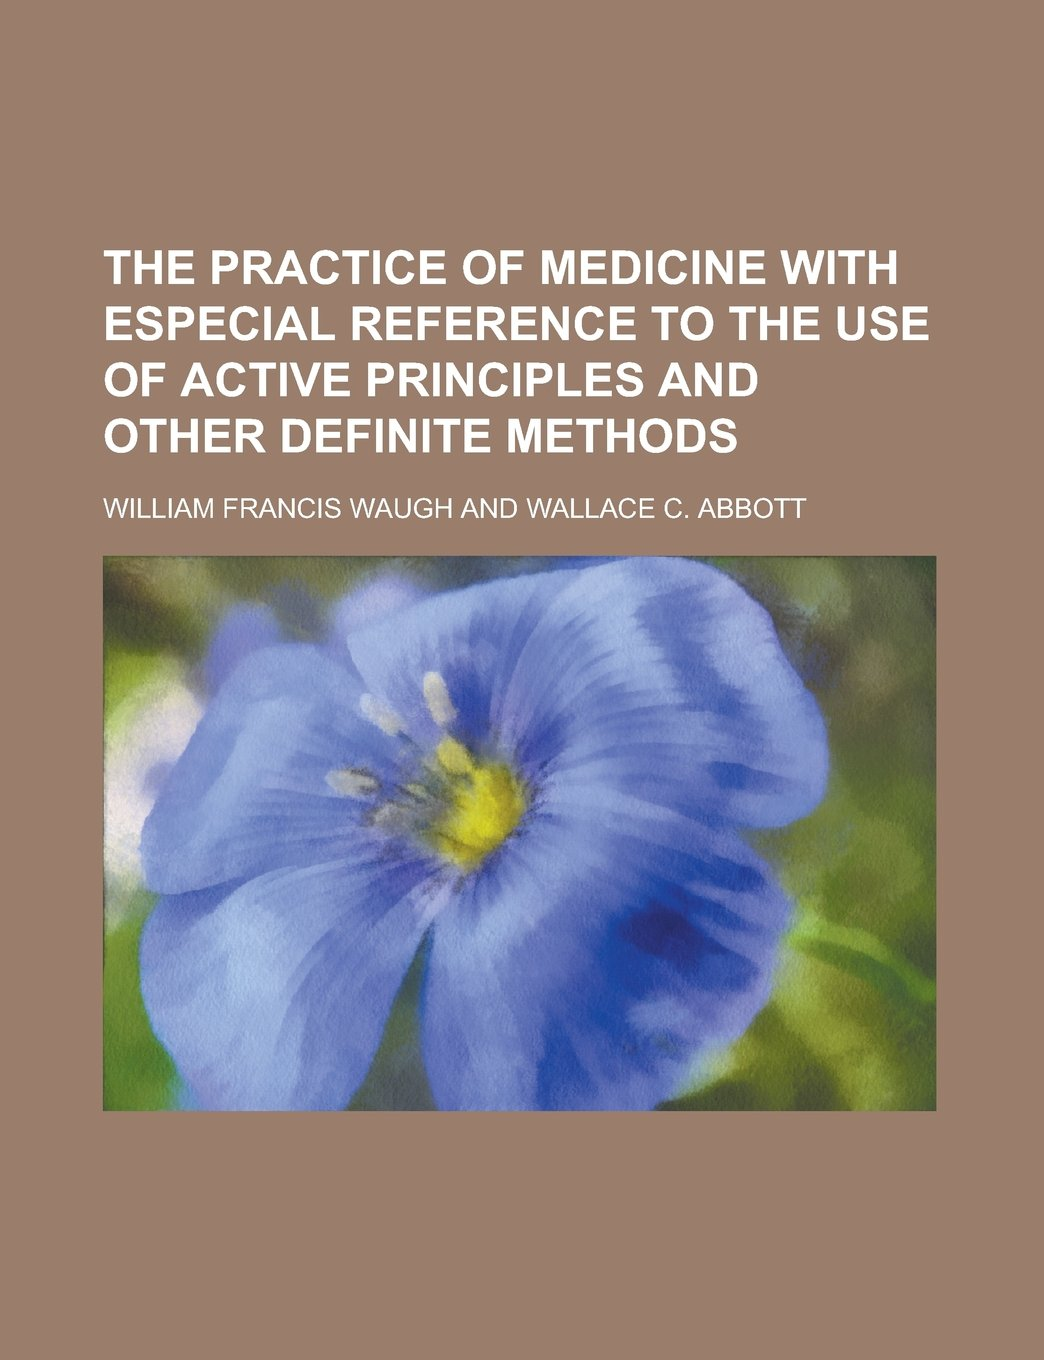 Read Online The Practice of Medicine with Especial Reference to the Use of Active Principles and Other Definite Methods PDF